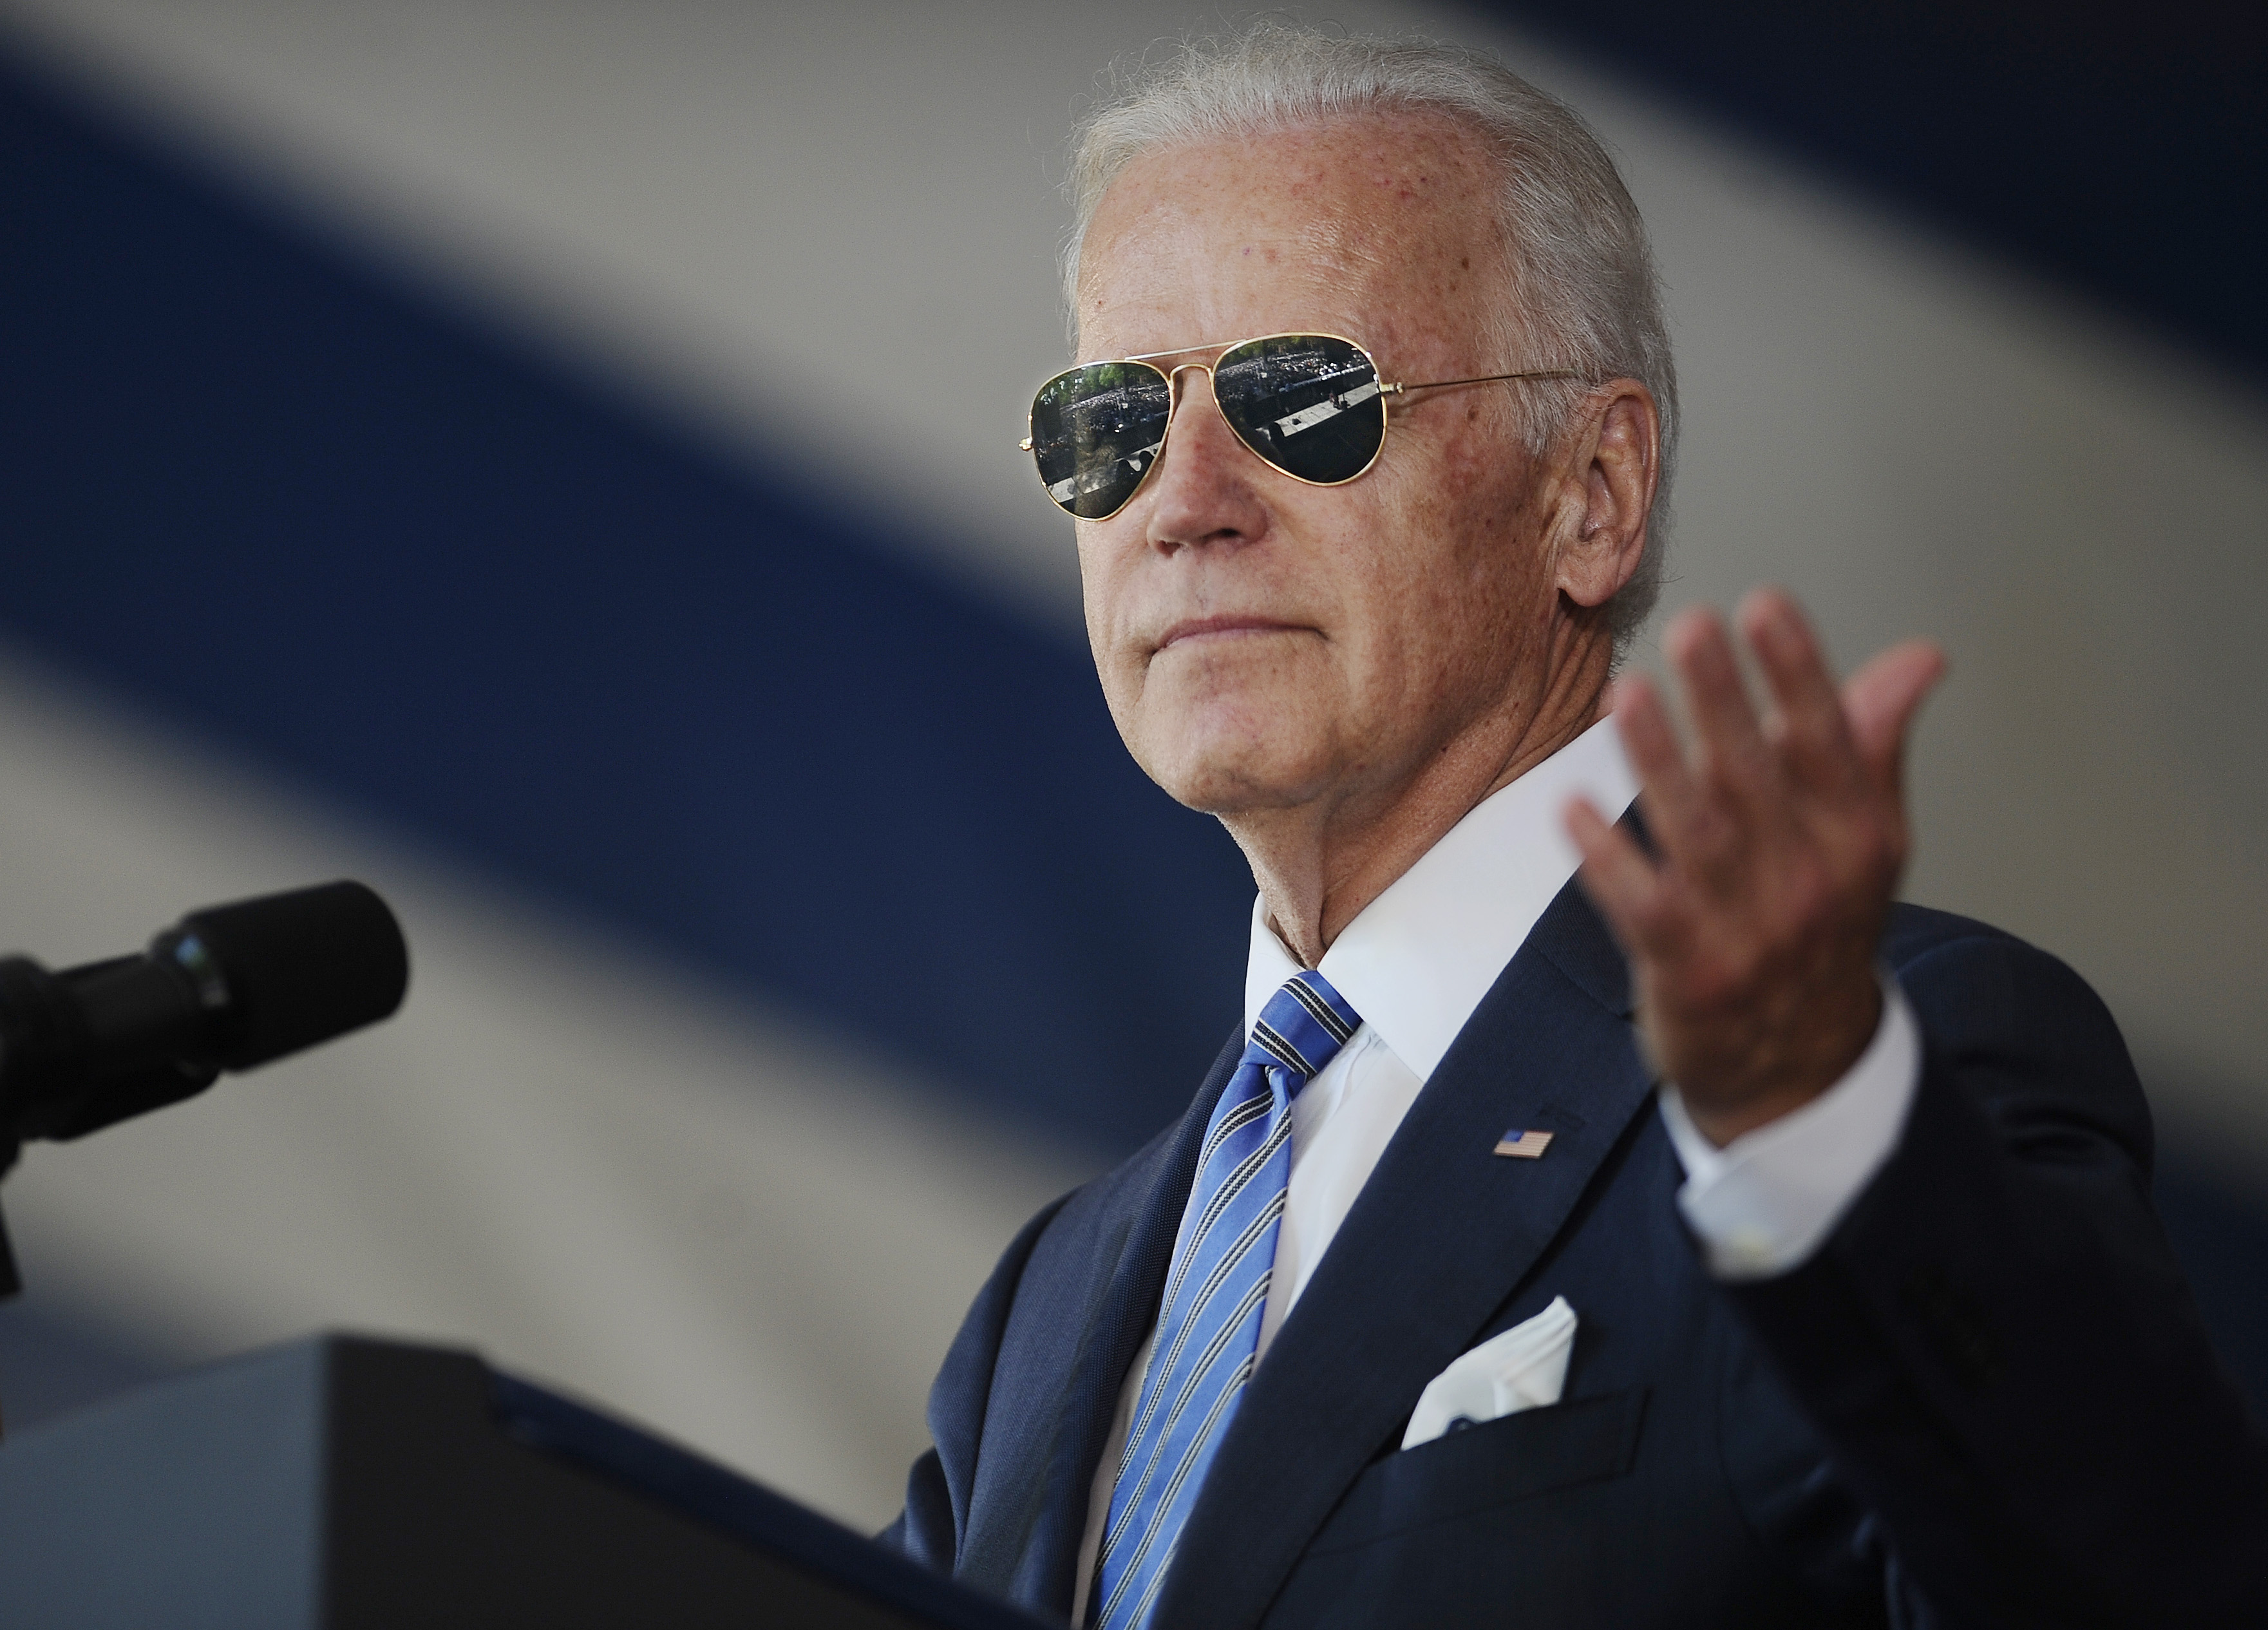 Questions About Joe Biden's Mental Fitness Creep Into Mainstream